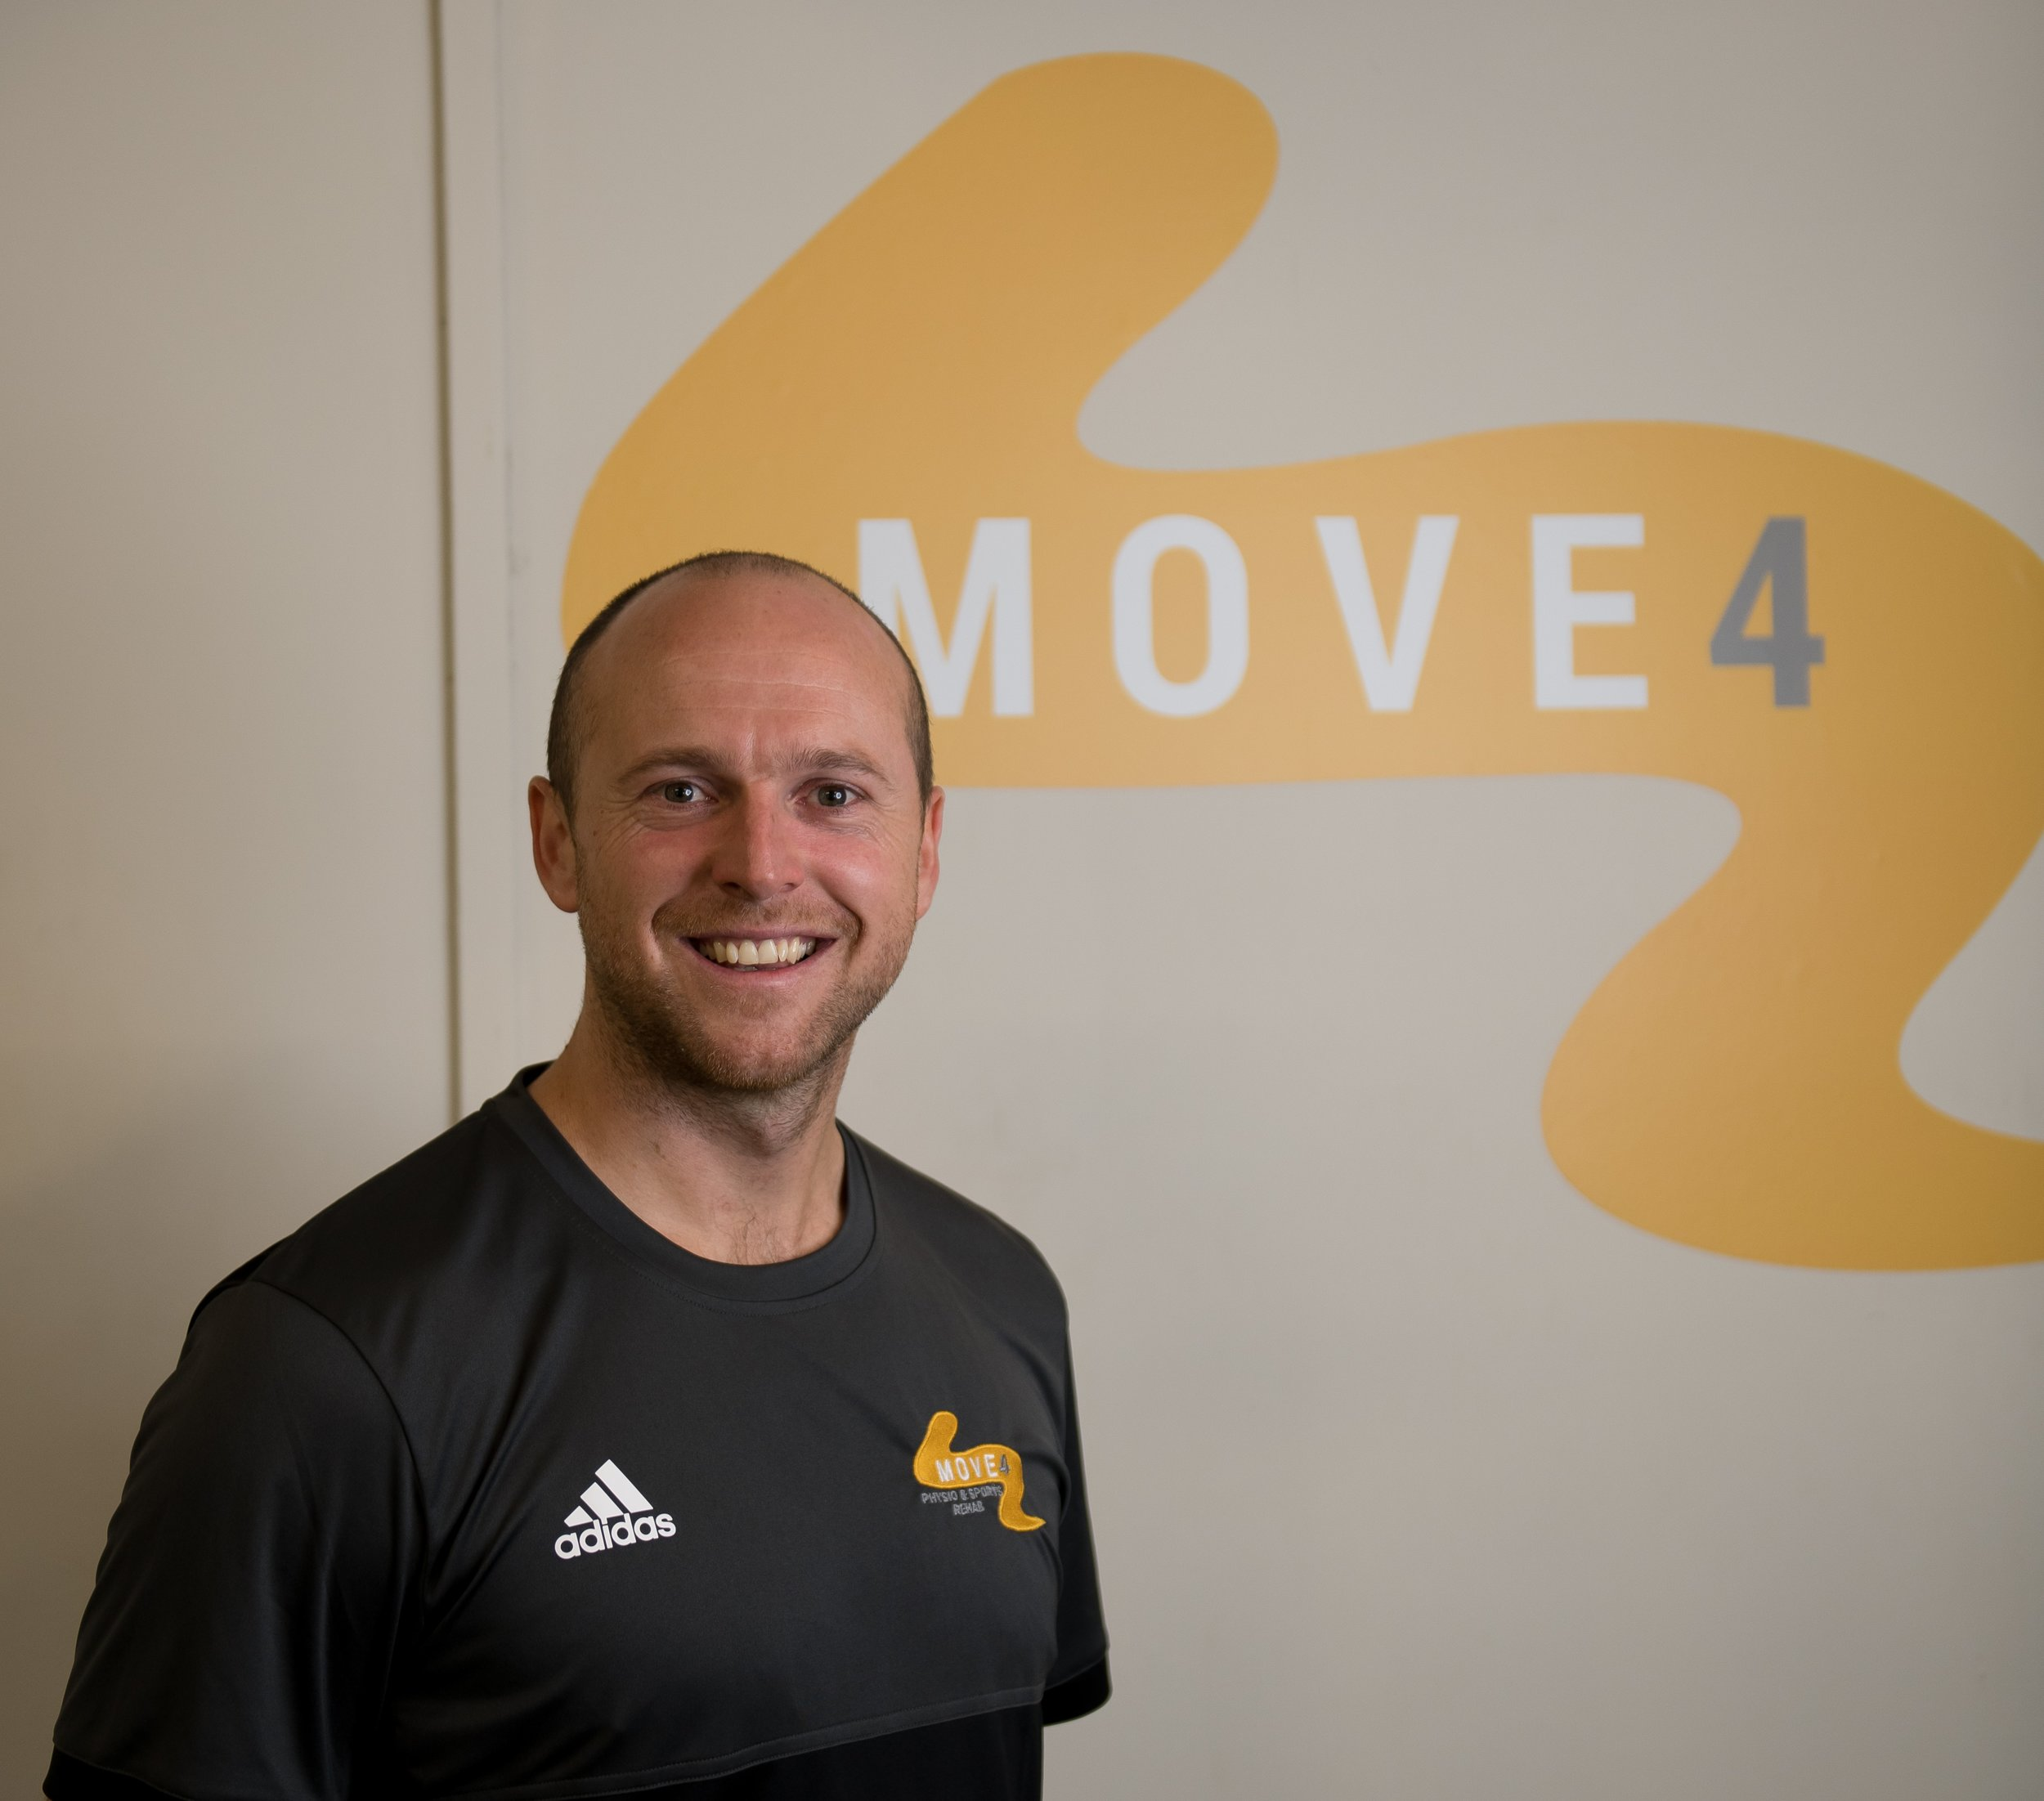 Lee Daggett - BSc (Hons) BA (Hons) MCSPPhysiotherapist at Northampton SaintsEx professional cricketer at Warwickshire CCC and Northamptonshire CCCGraduate in Physiotherapy (Salford University)PGDip Motion Analysis